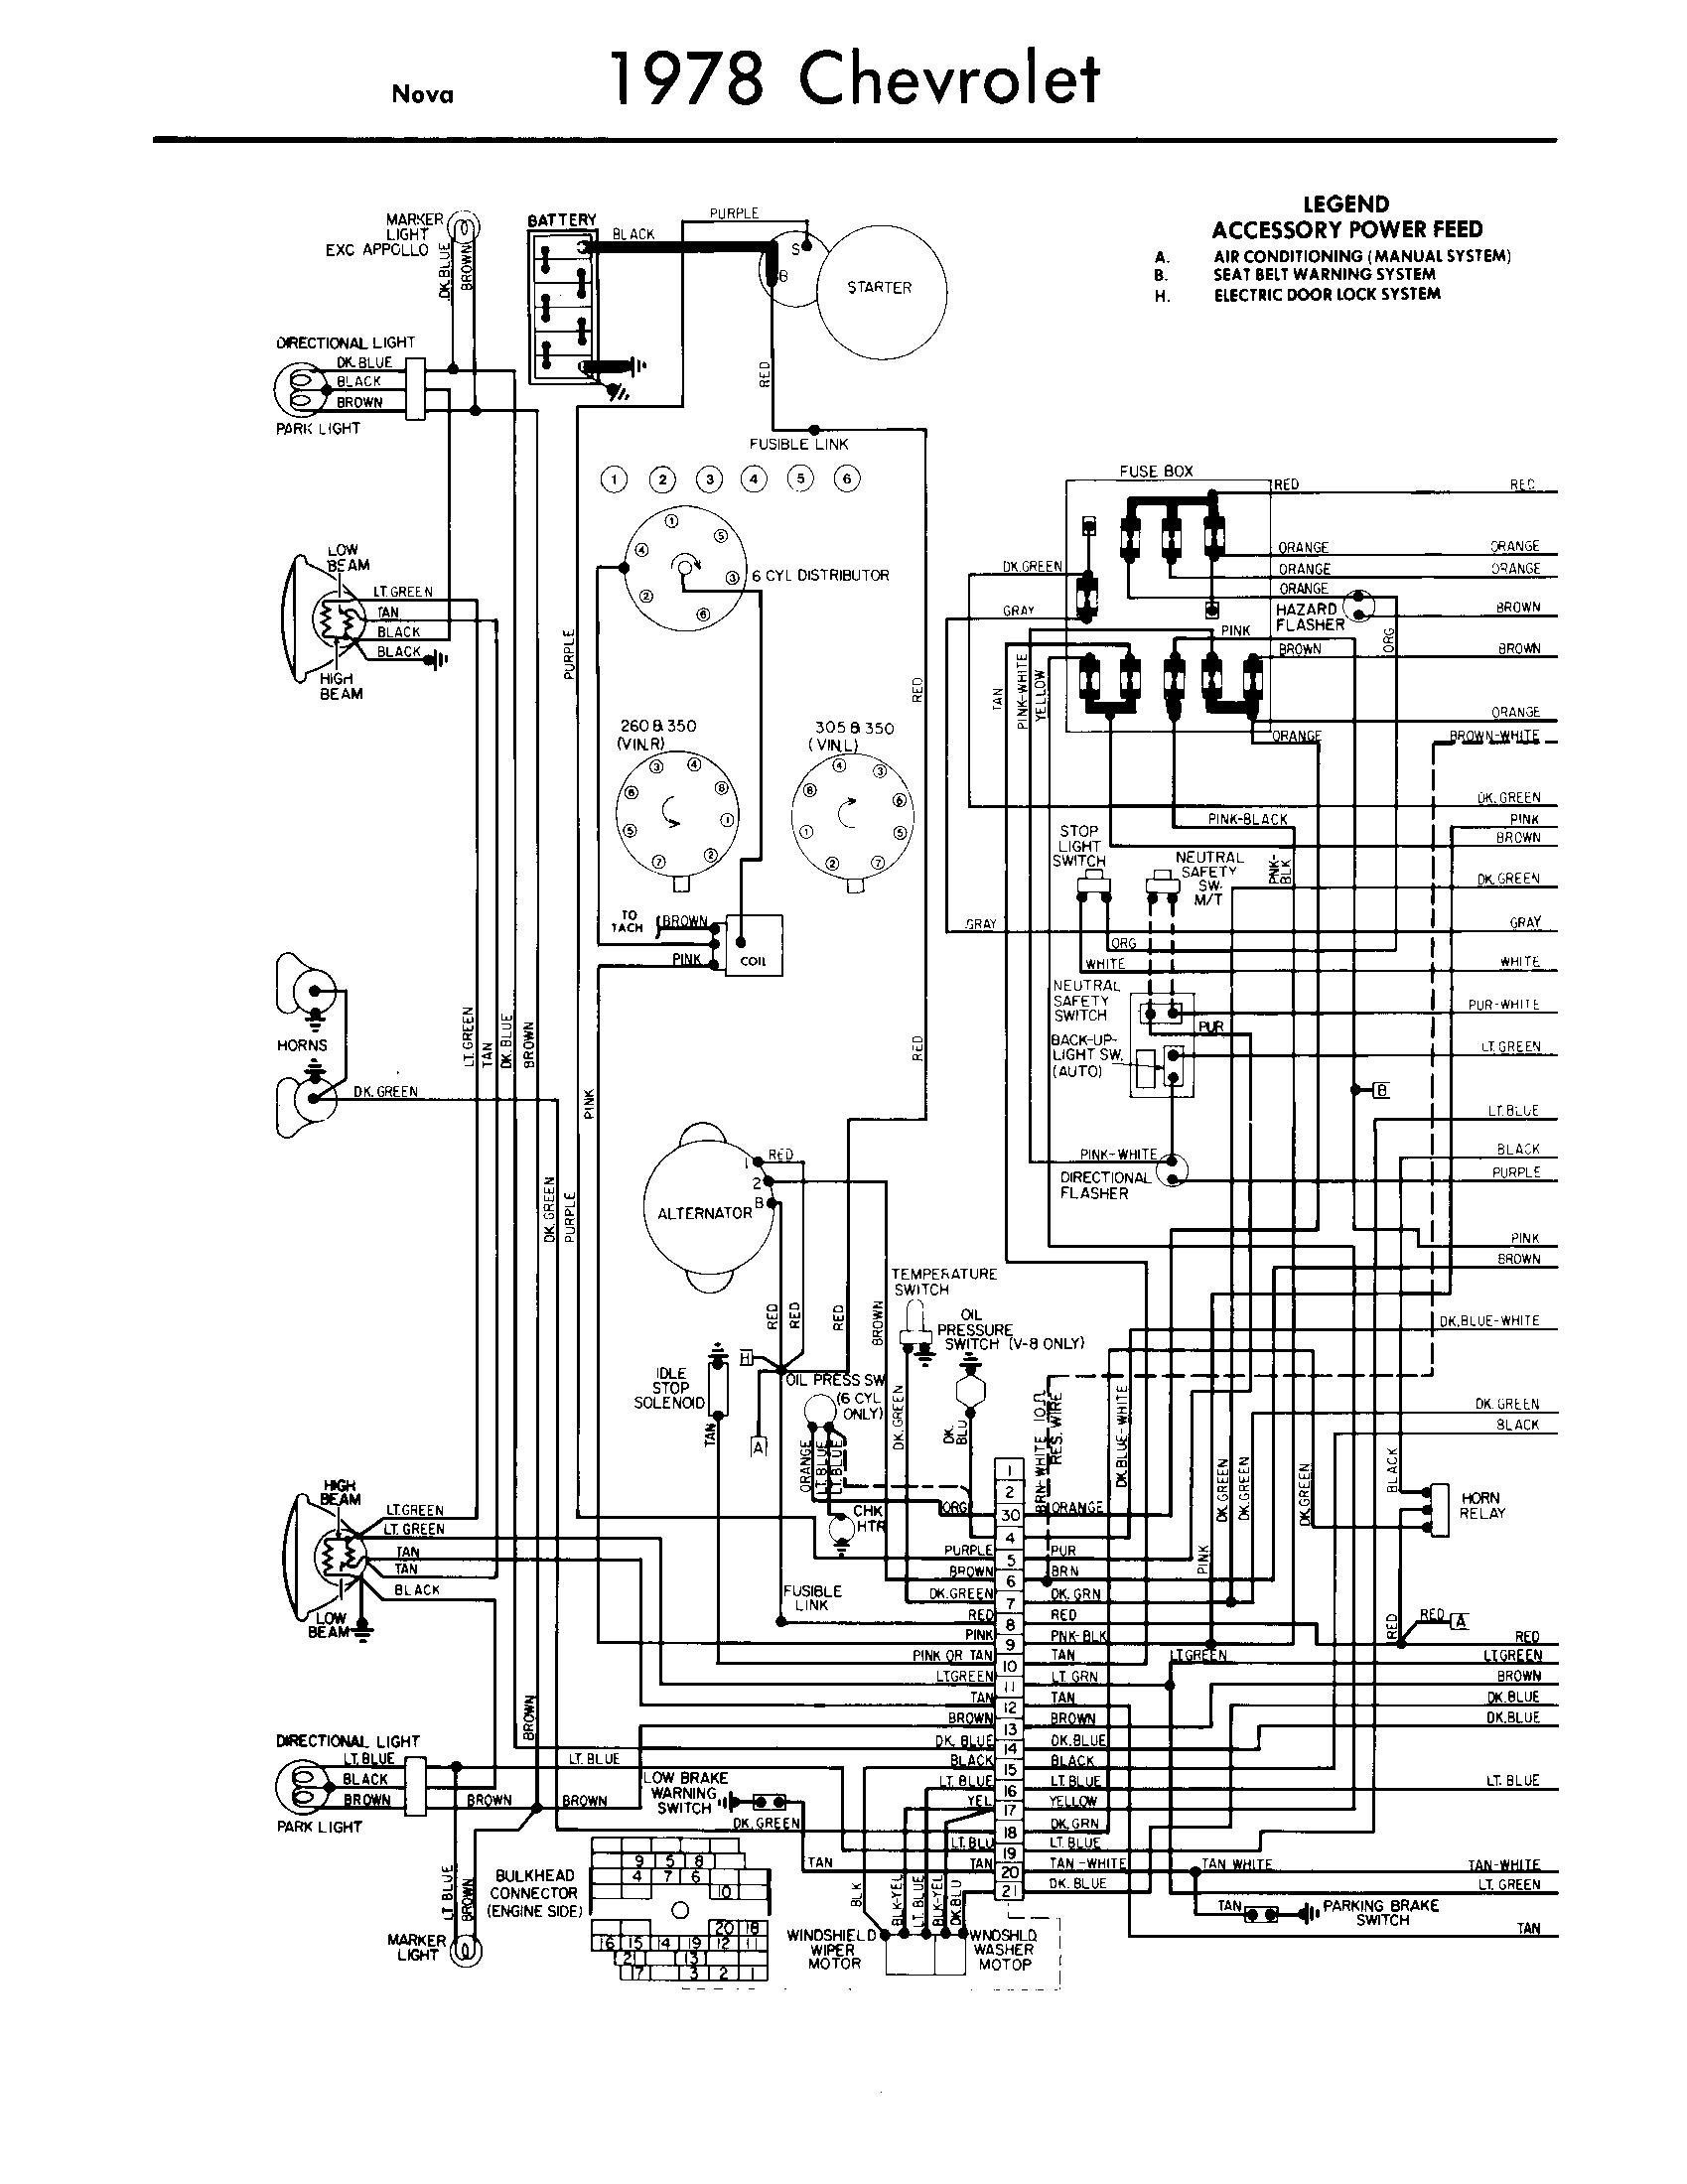 1987 Chevy Truck Vacuum Line Diagram 1977 Chevy Truck Alternator Wiring Diagram Wiring Data Of 1987 Chevy Truck Vacuum Line Diagram